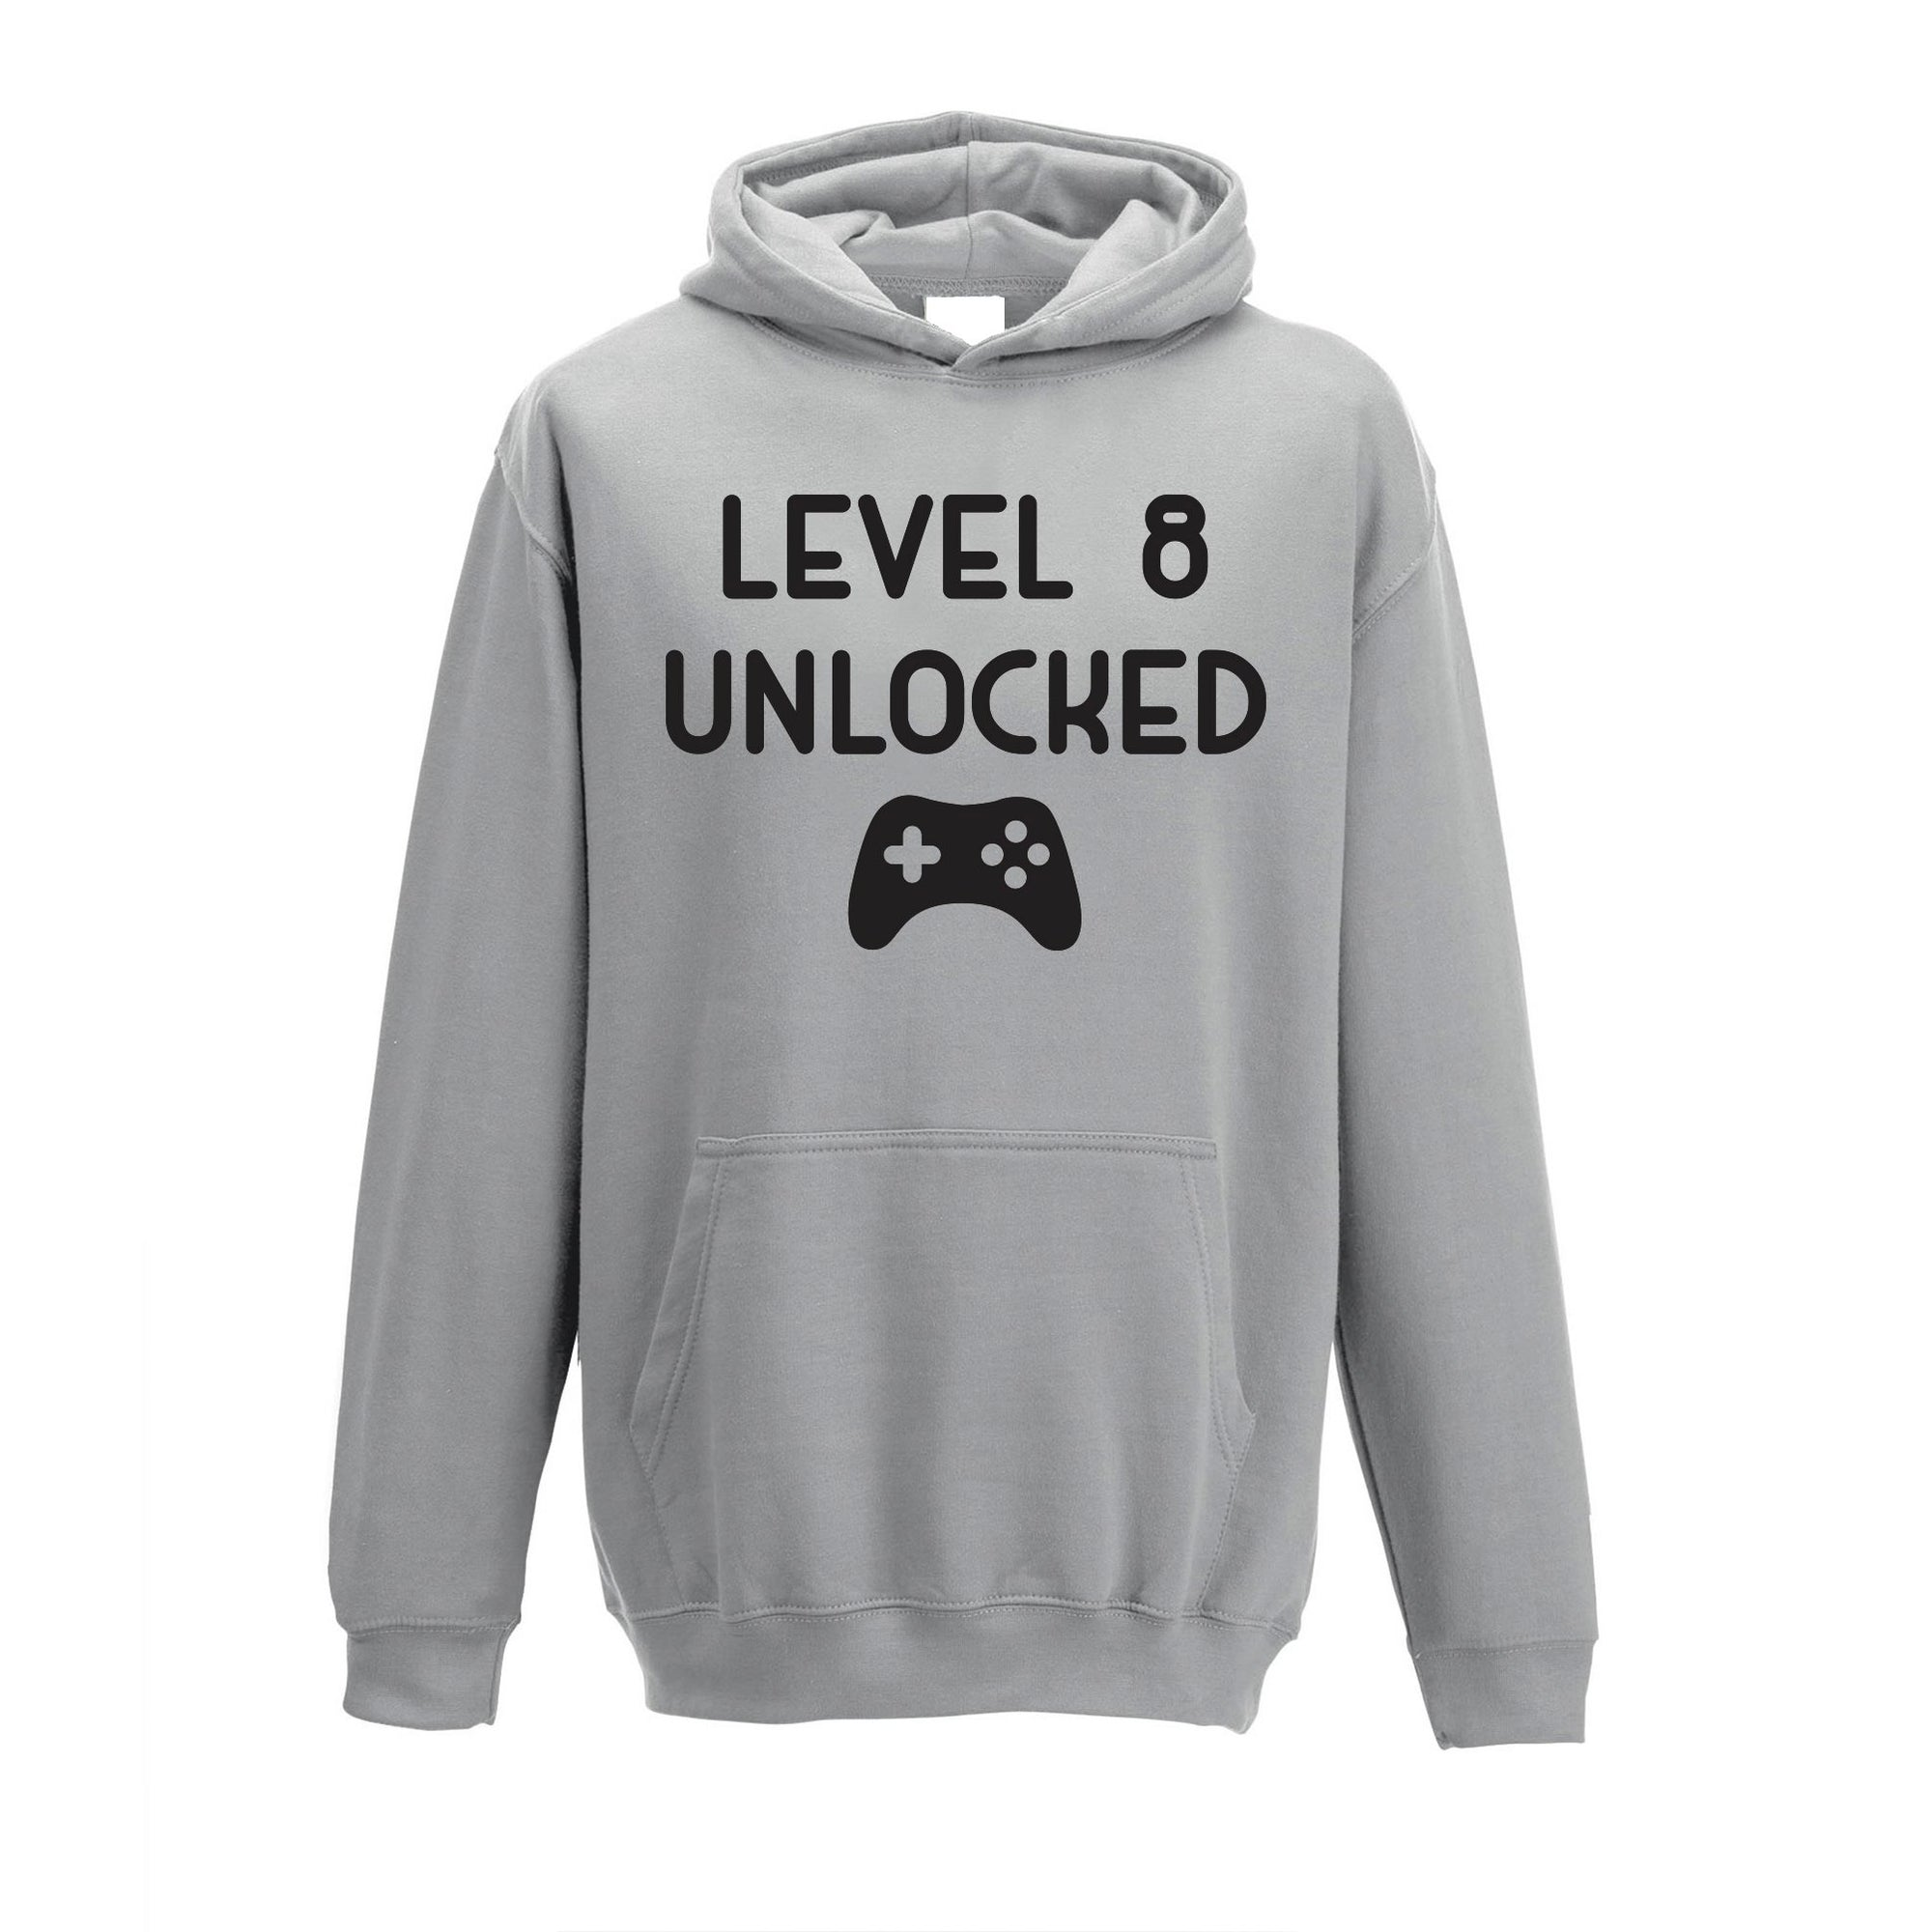 Gamers 8th Birthday Kids Hoodie Level 8 Unlocked Kids Childs